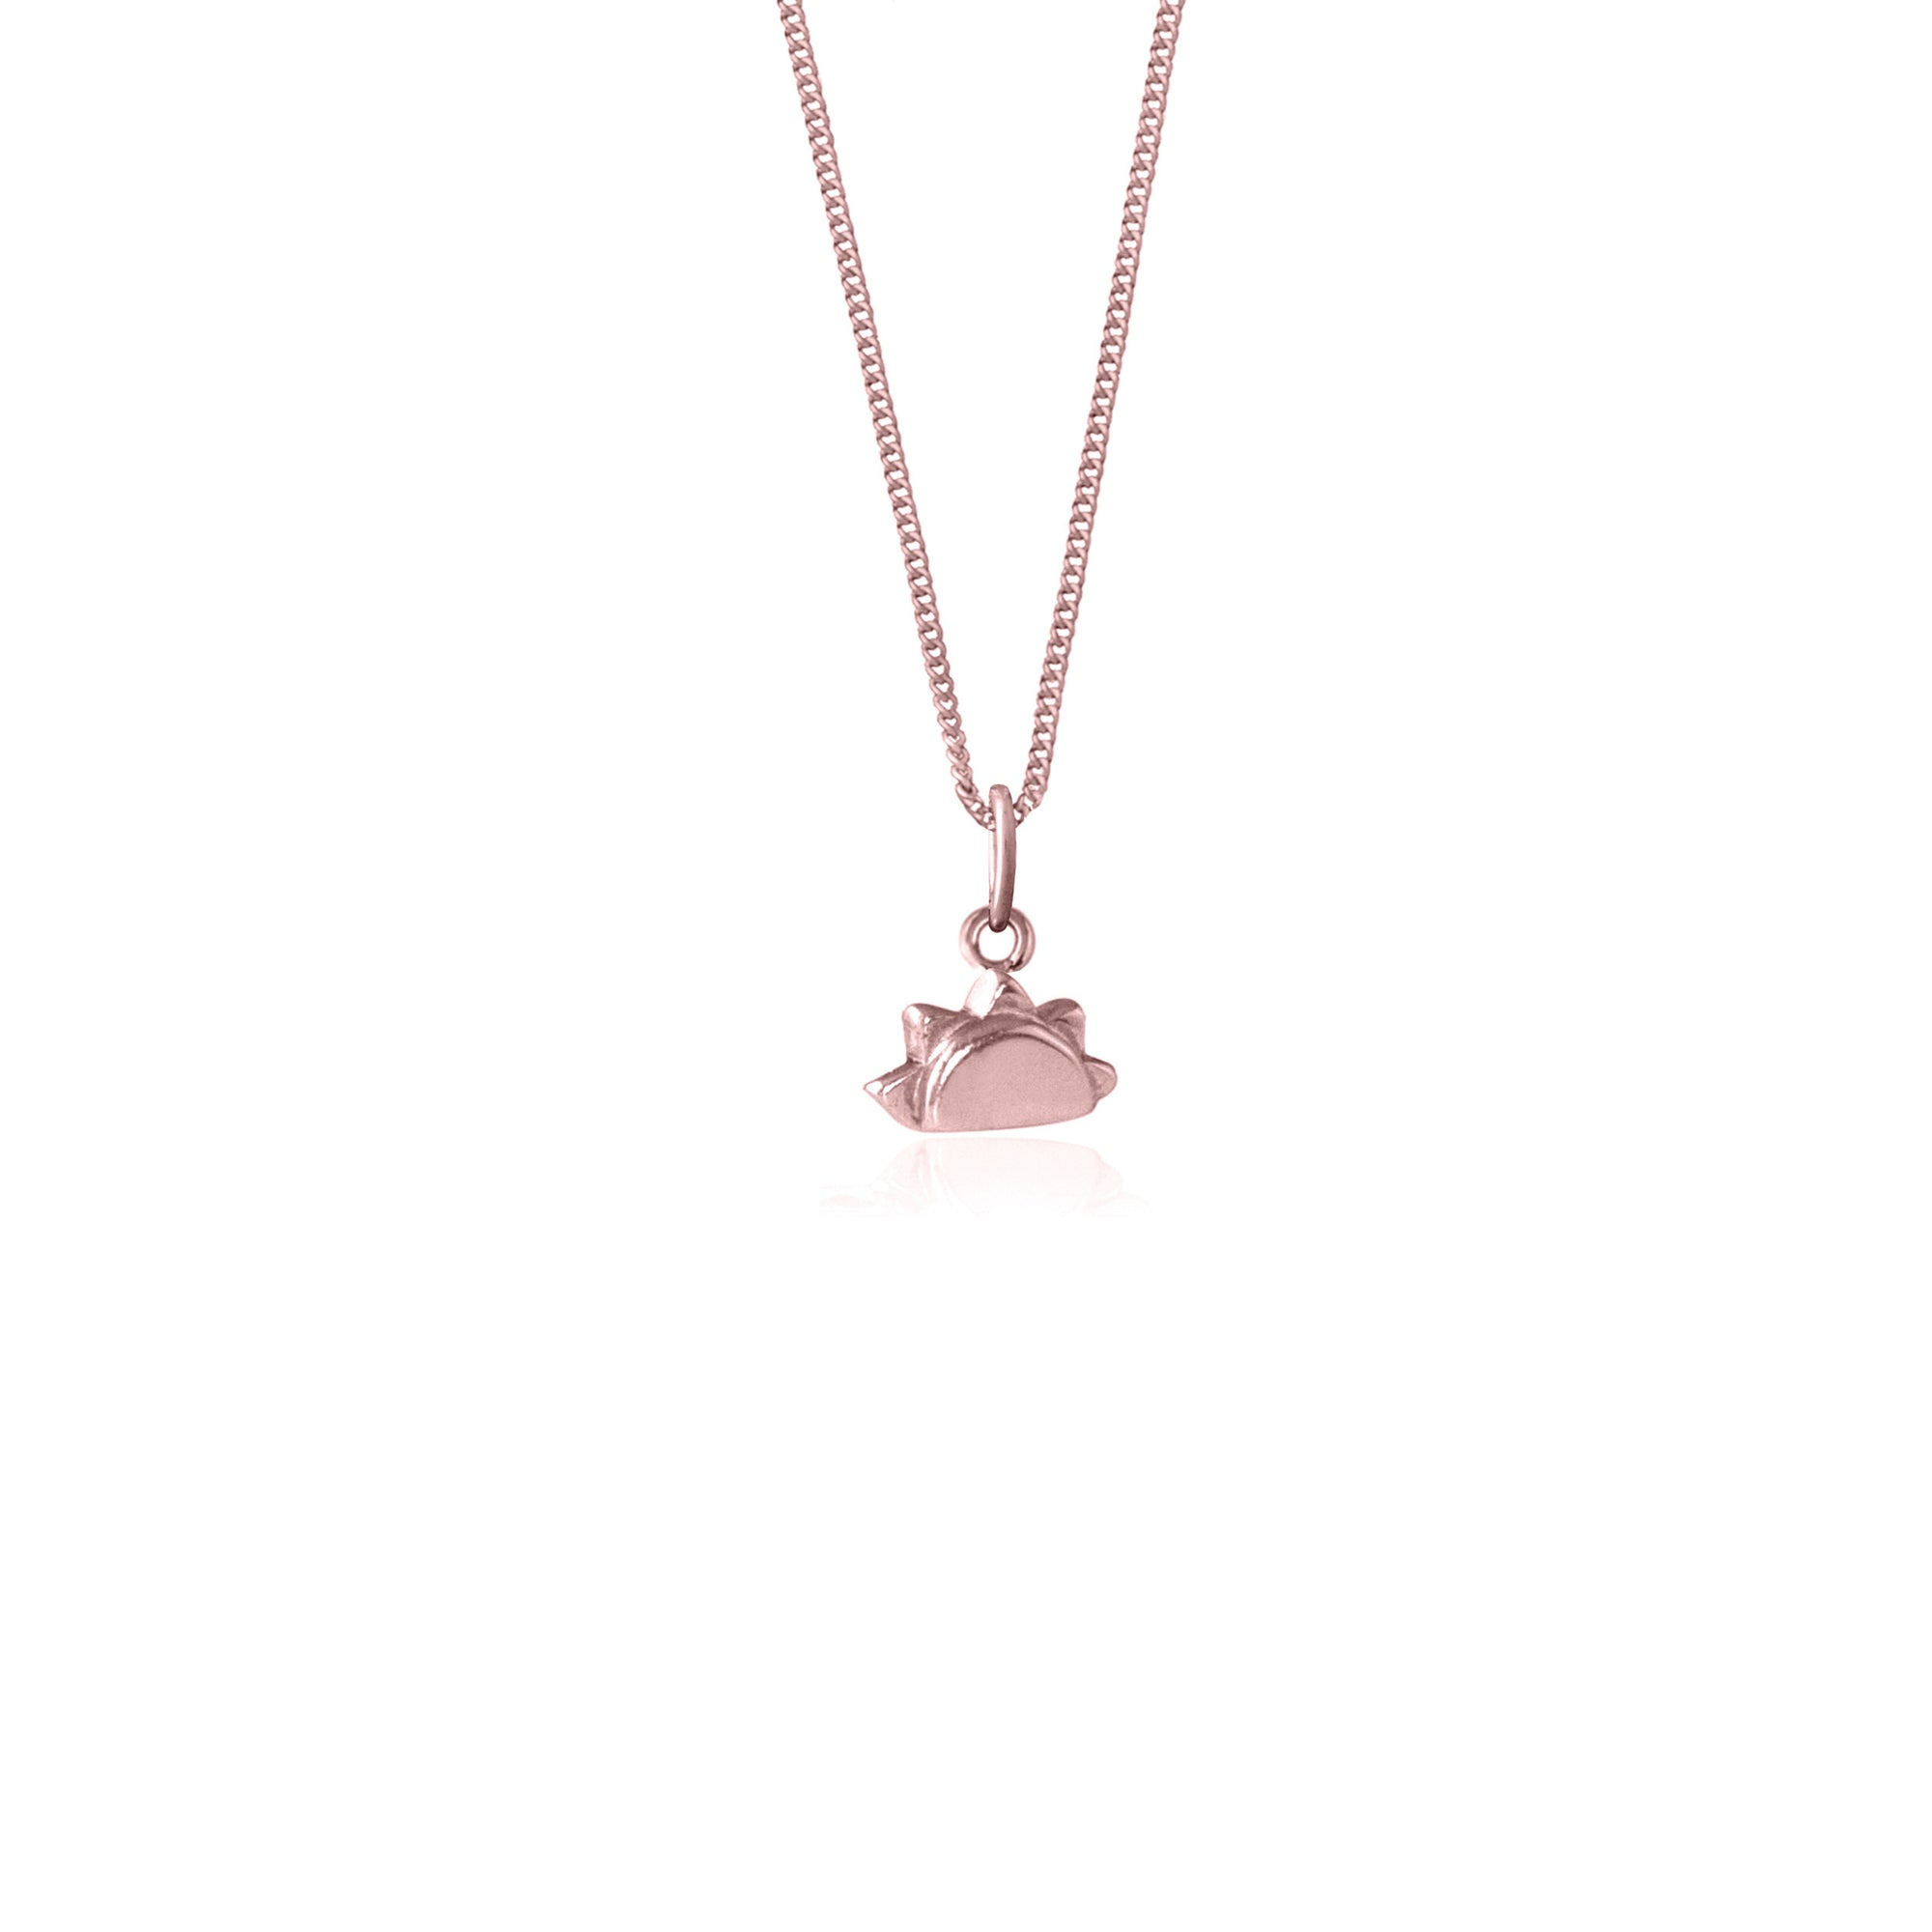 La Luna Rose 'See you at Sunrise' Necklace - Rose Gold